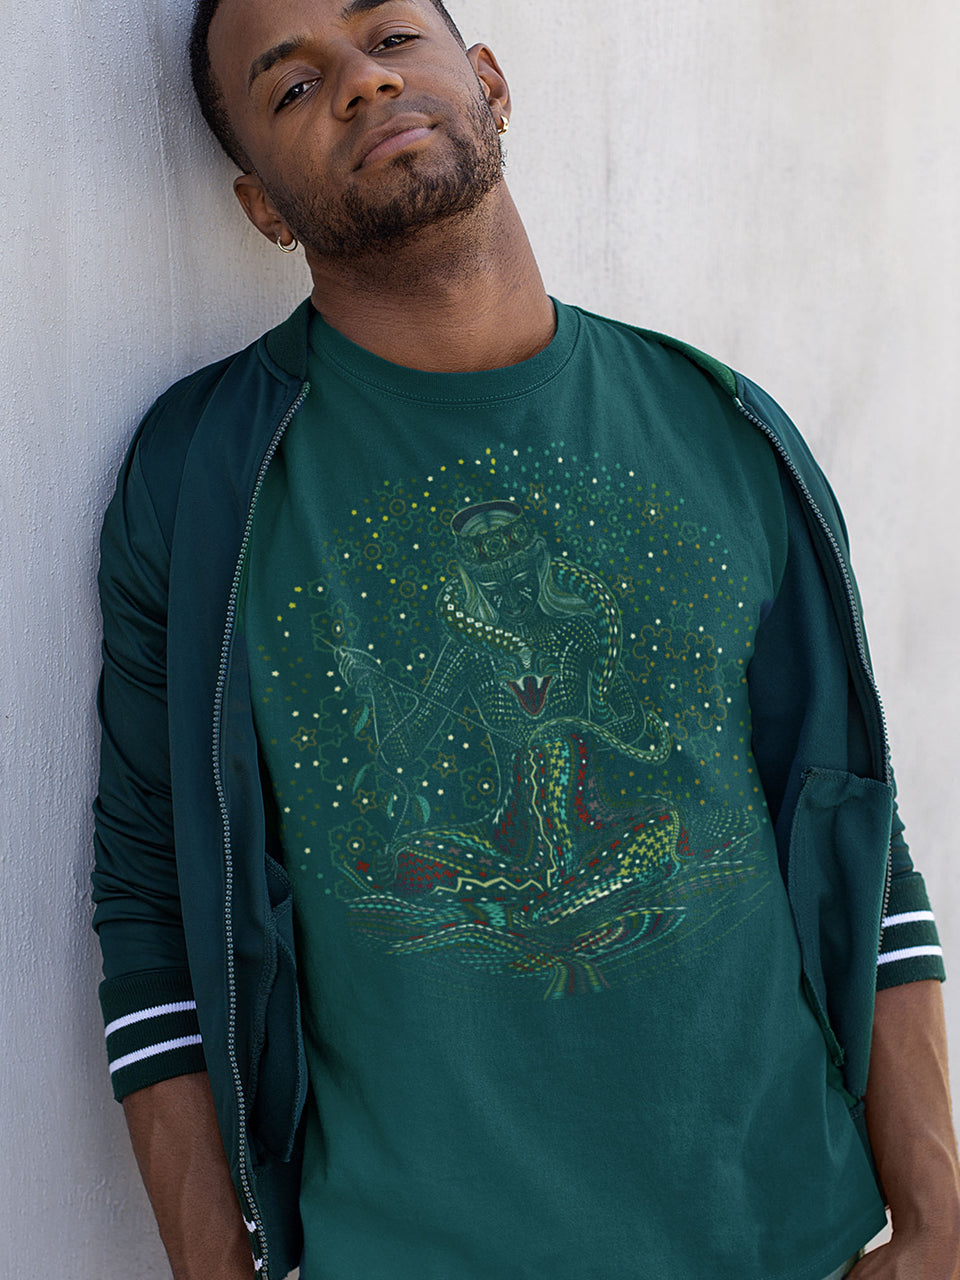 Song Weaving Made To Order Men T-Shirt - Bottle Green